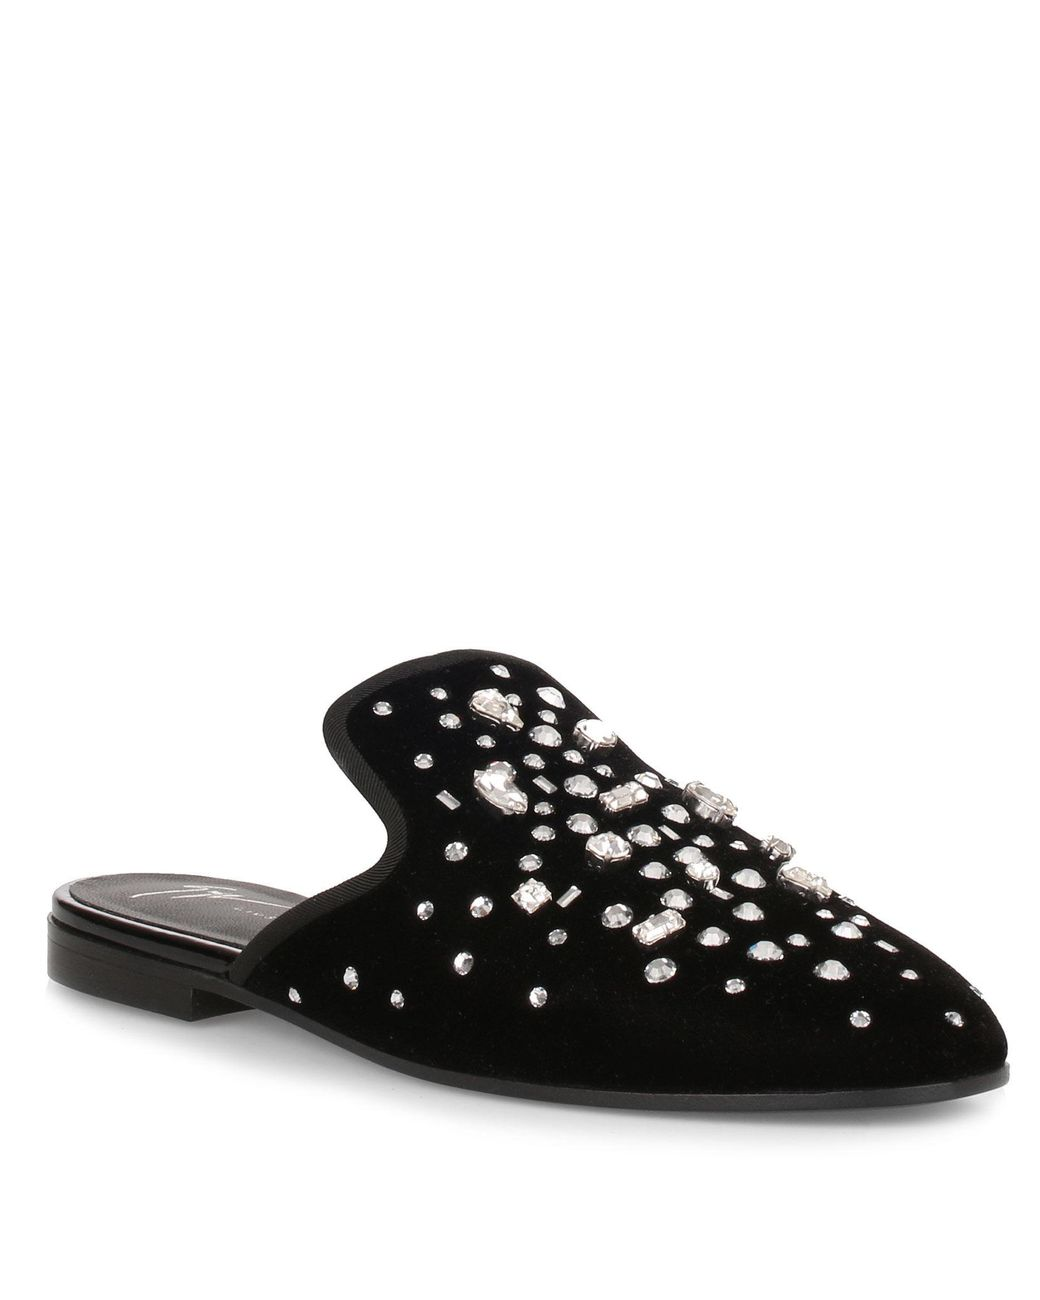 abdca9edc Giuseppe Zanotti. Women's Black The Dazzling Elsa Velvet Crystal Slipper Us